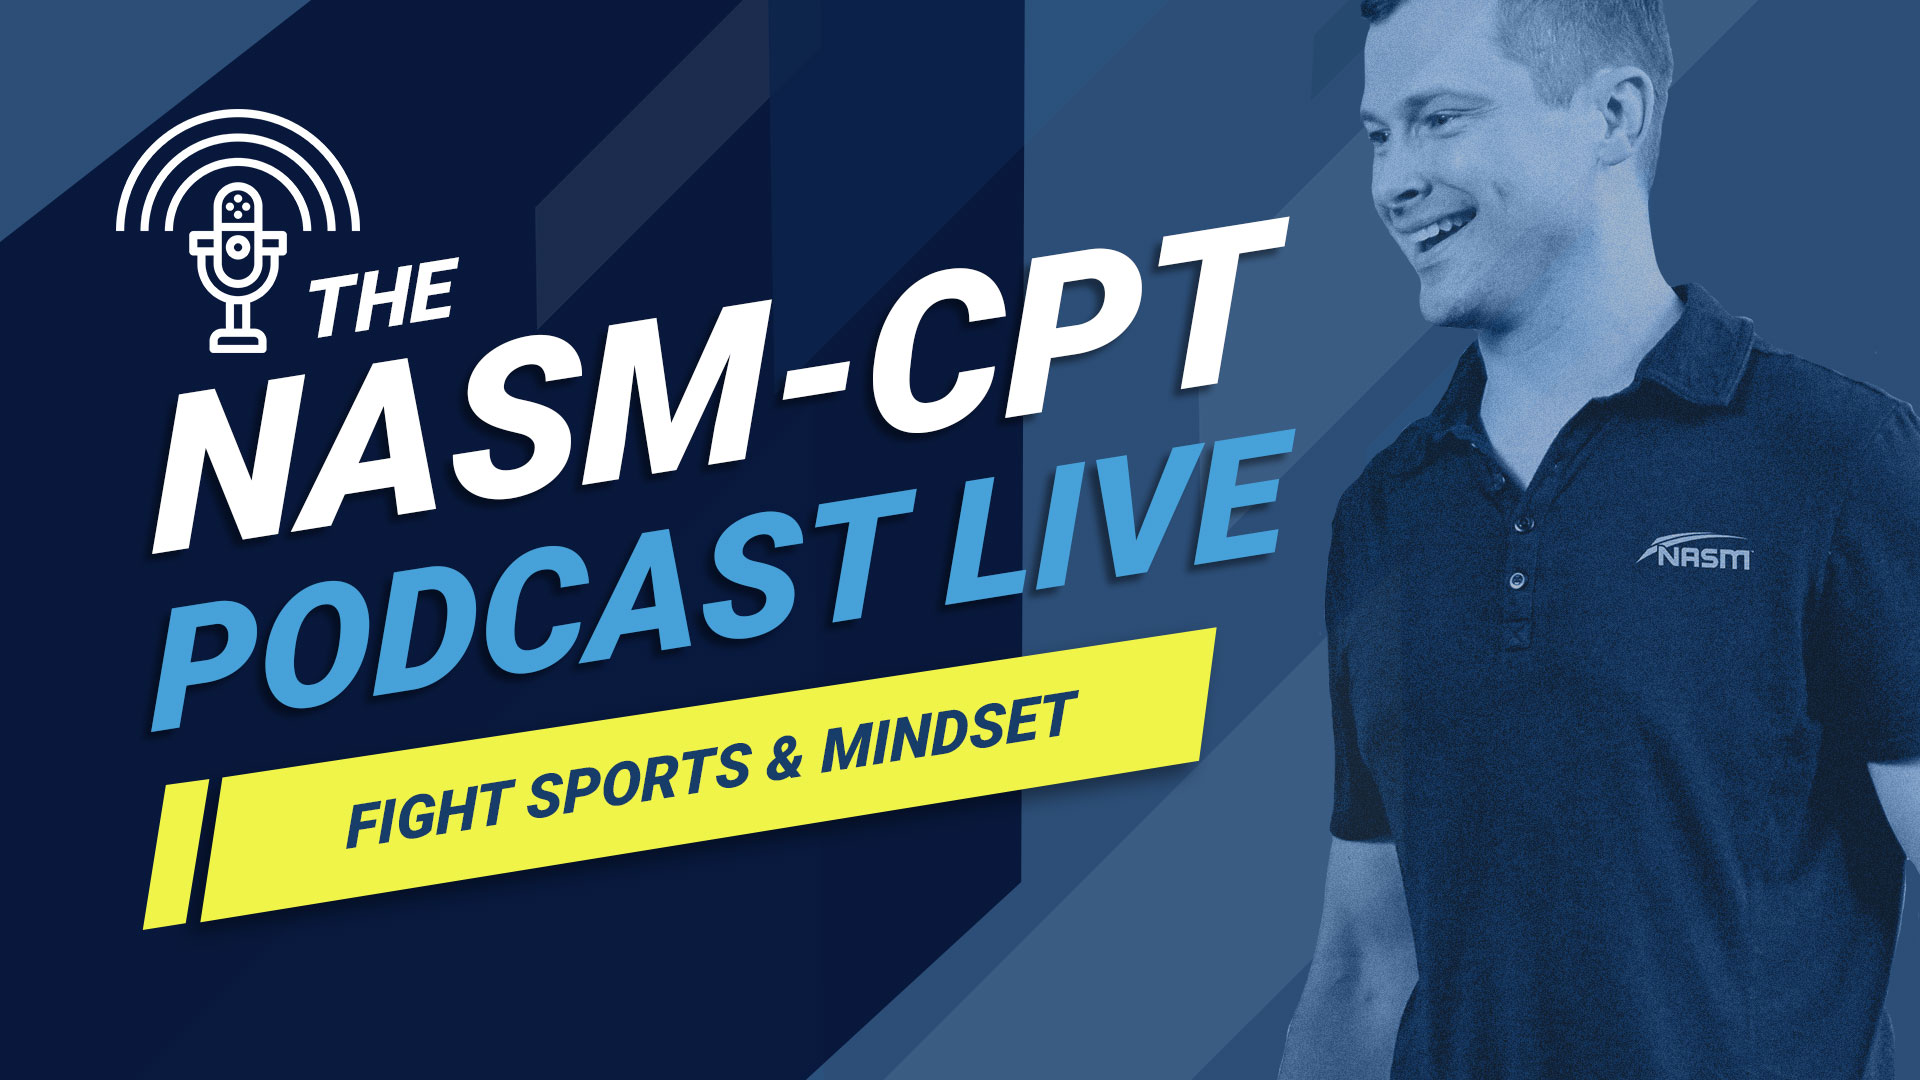 fight sports episode banner for Clenbuterolfr CPT podcast